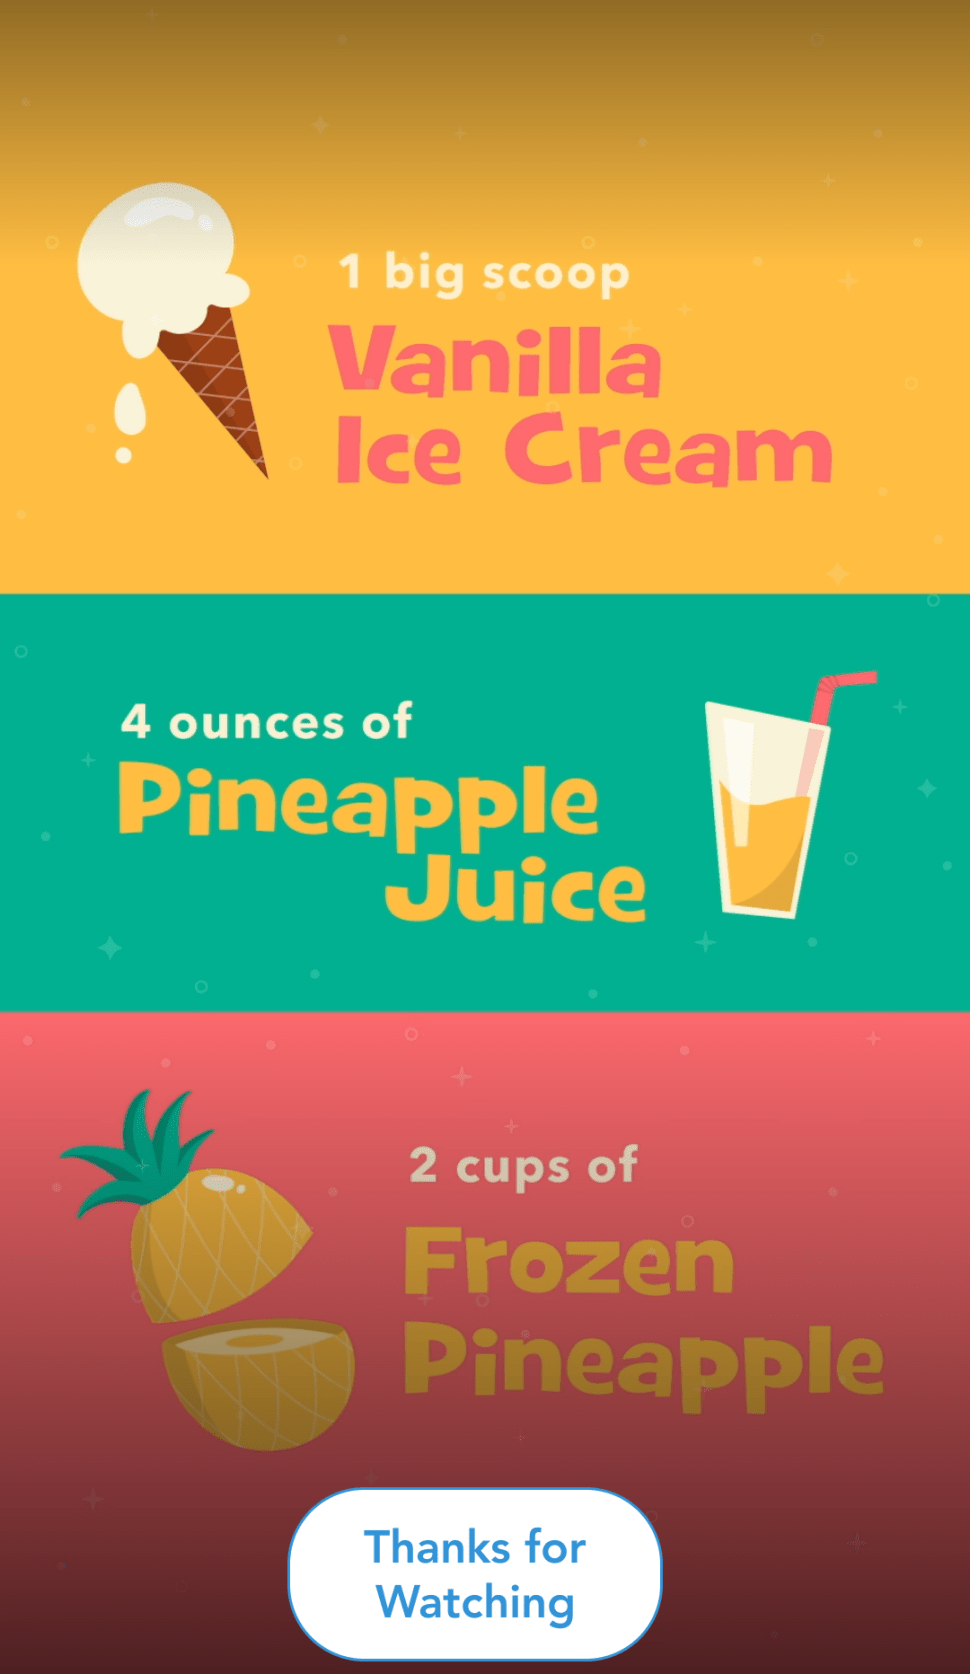 Disney shares recipes for DIY Dole Whip and Churros / Boing Boing